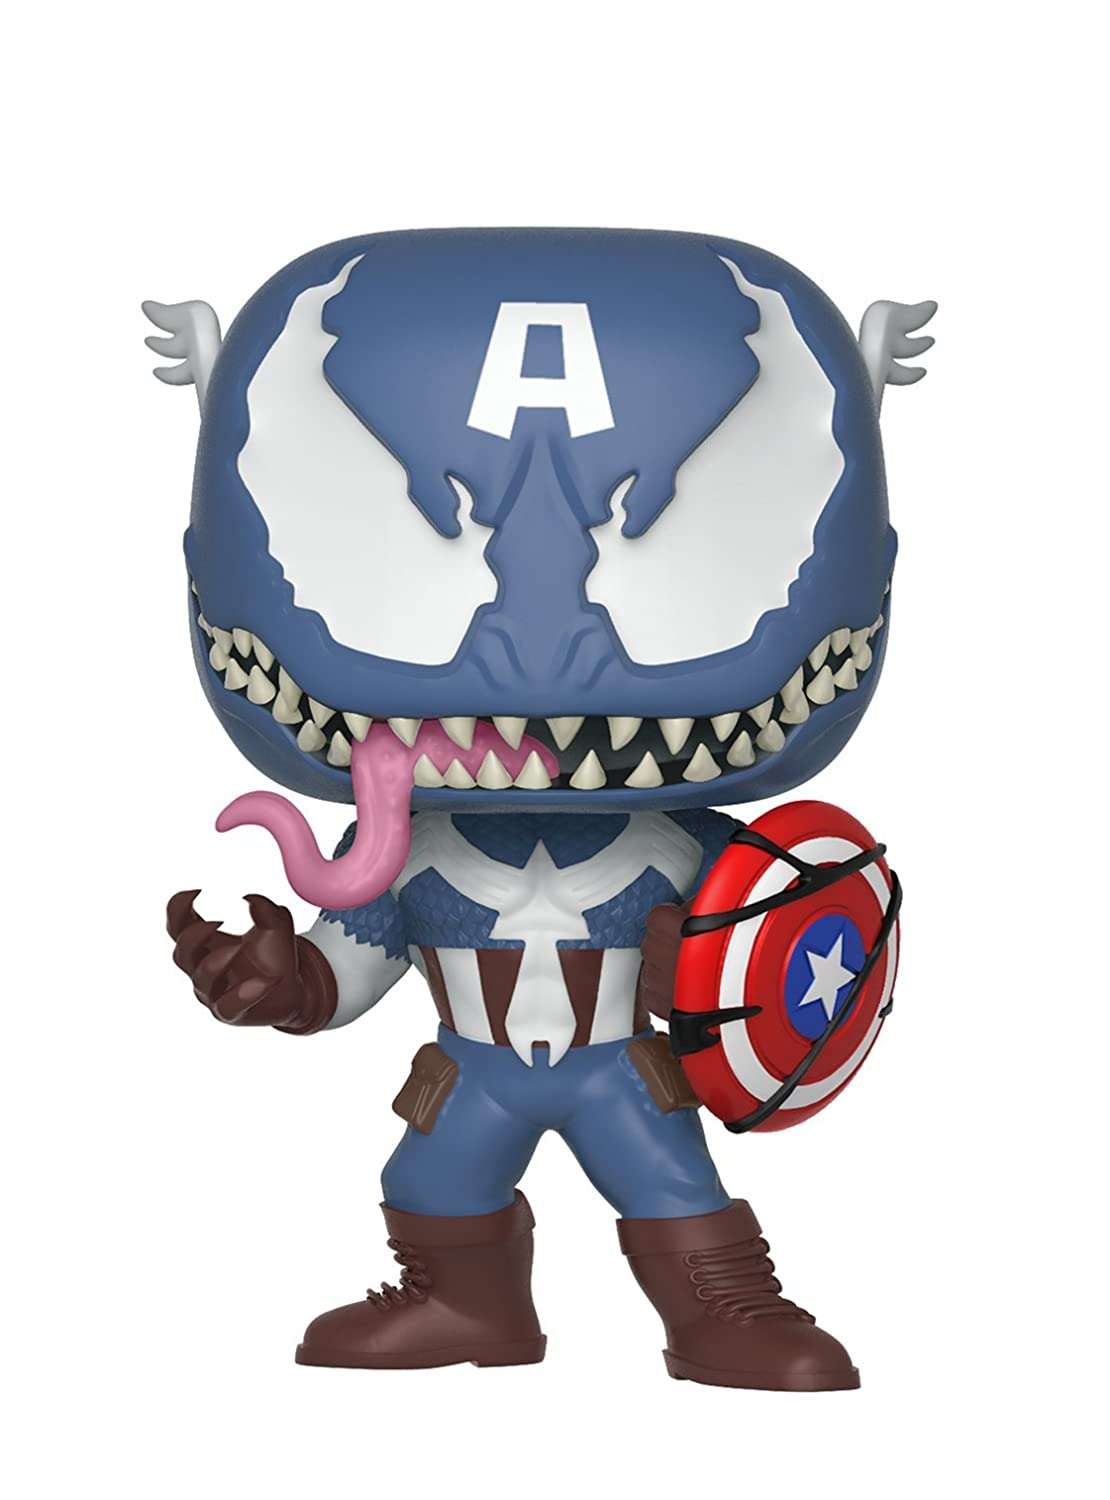 Funko Pop Marvel: Venom - Venom Captain America Collectible Figure, Multicolor 32686